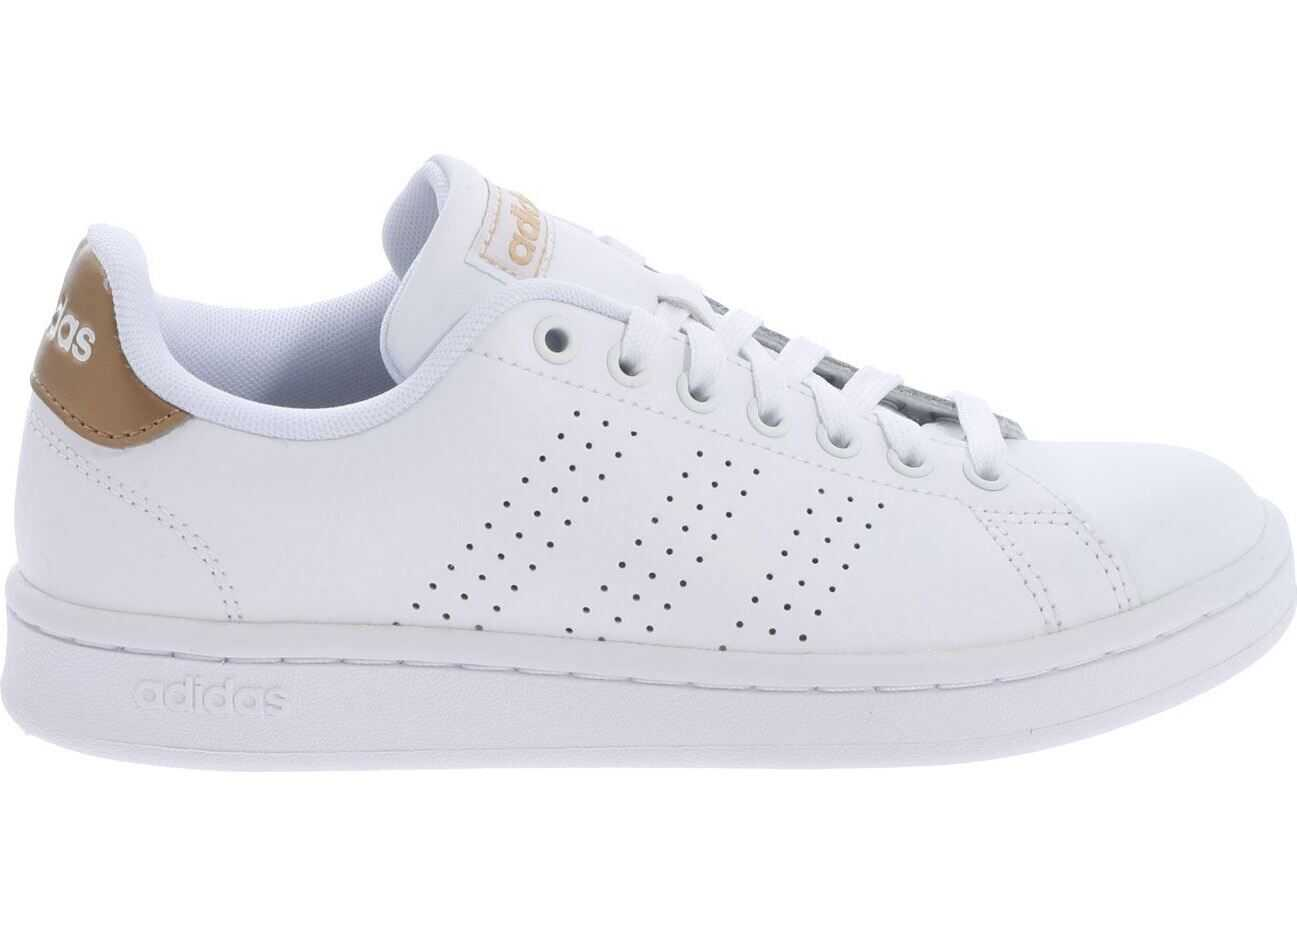 adidas White Advantage Sneakers With Gold Detail White